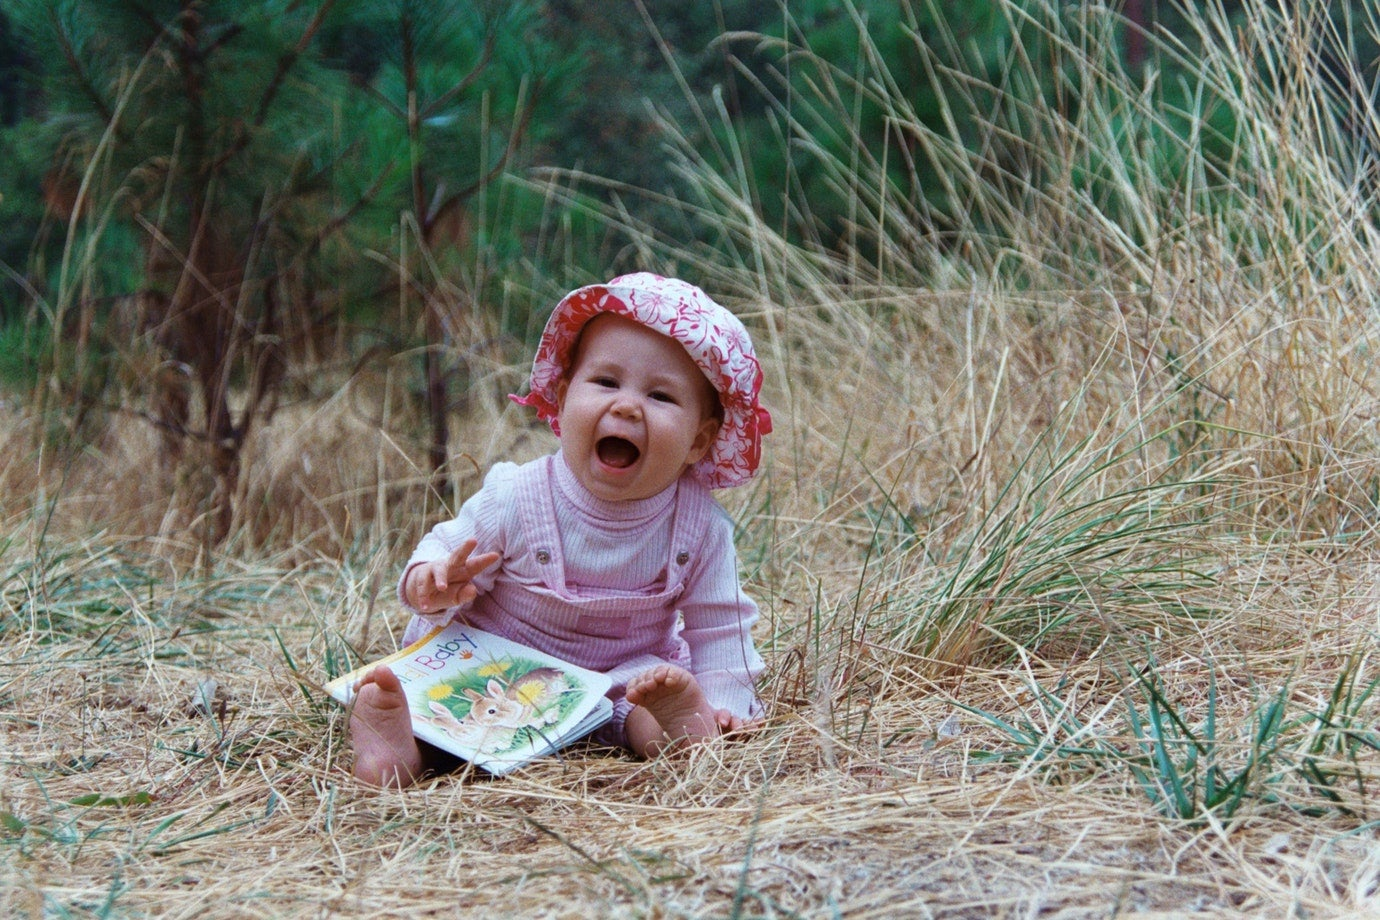 baby girl with pink hat and overalls sitting in tall grass and laughing